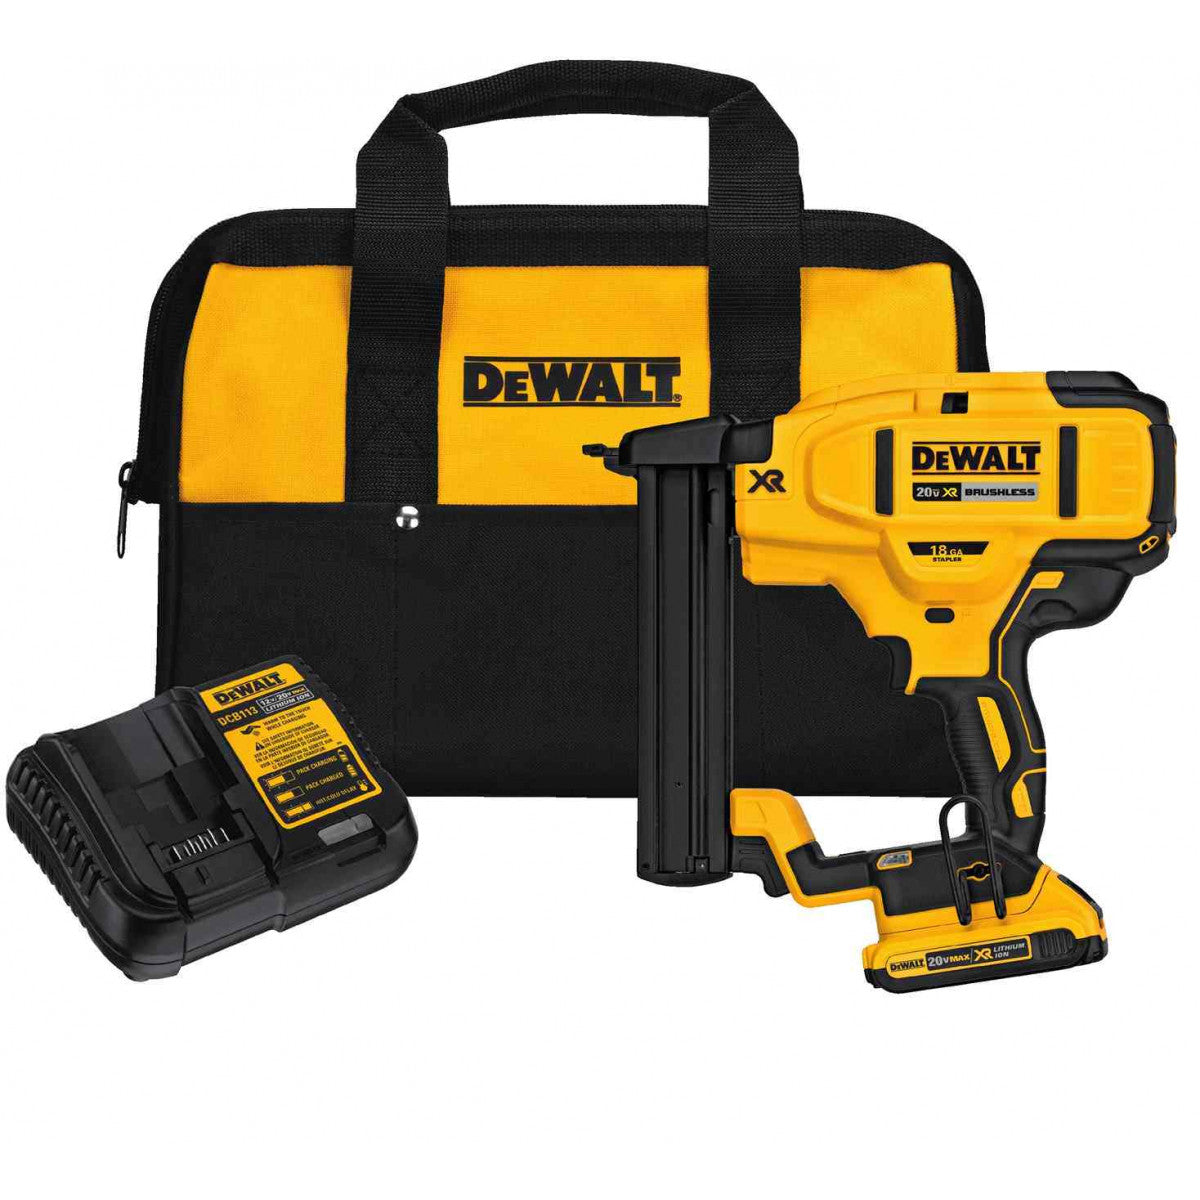 DEWALT 20V MAX* XR® 18 GA Cordless Narrow Crown Stapler Kit DCN681D1